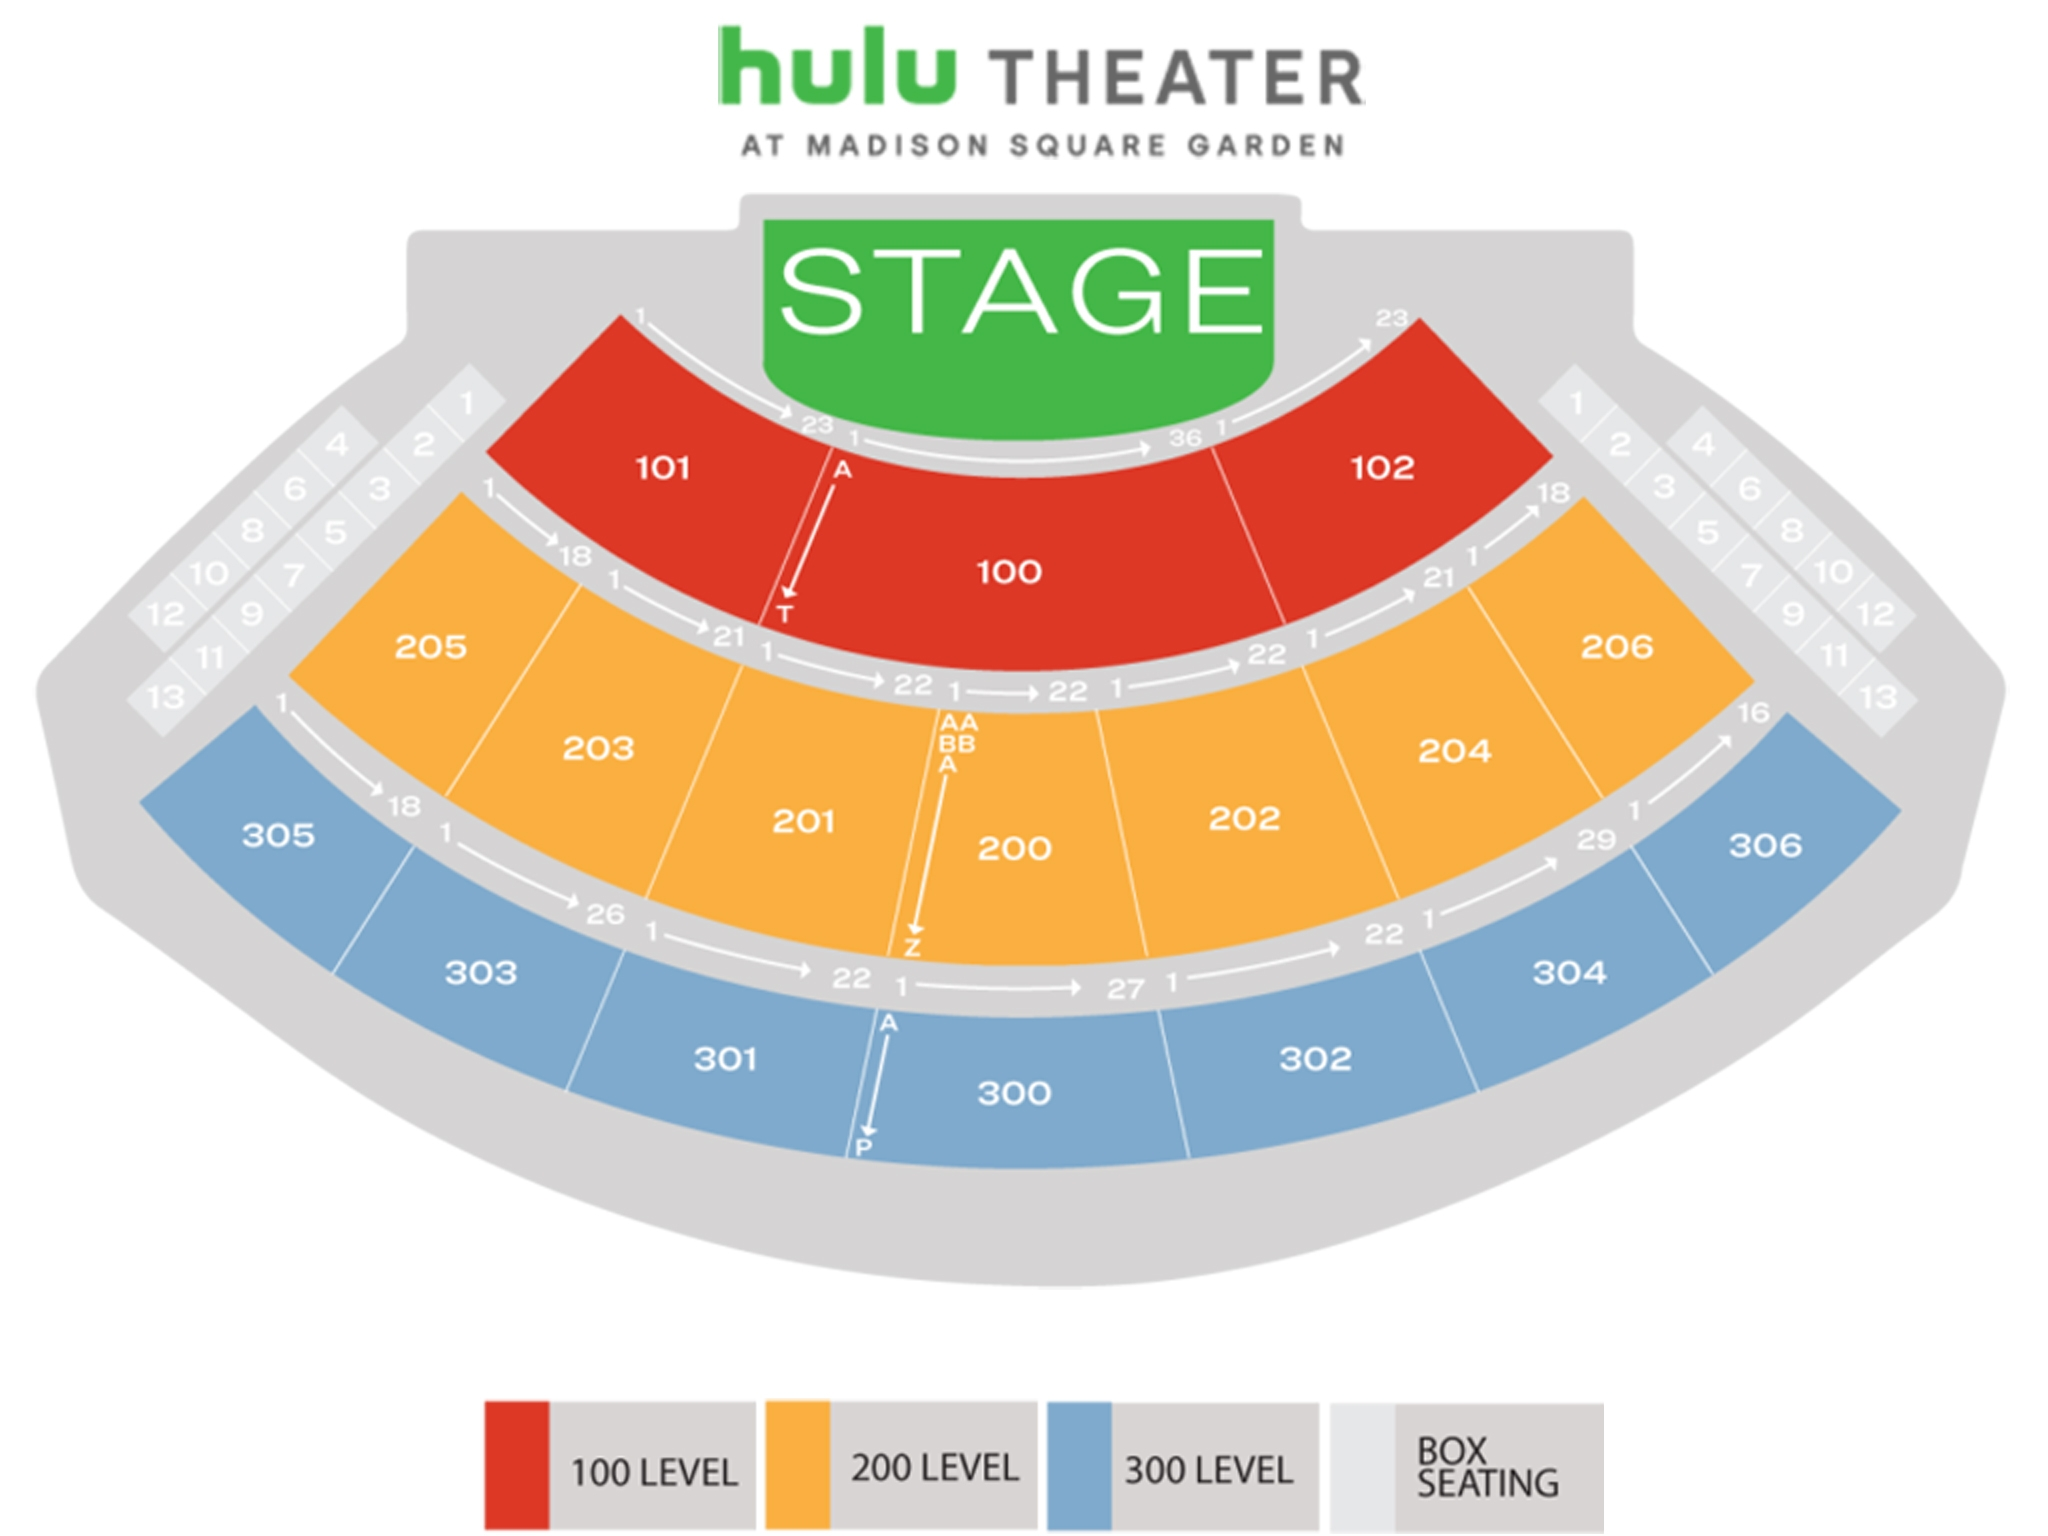 Hulu Theater at Madison Square Garden Seating Map